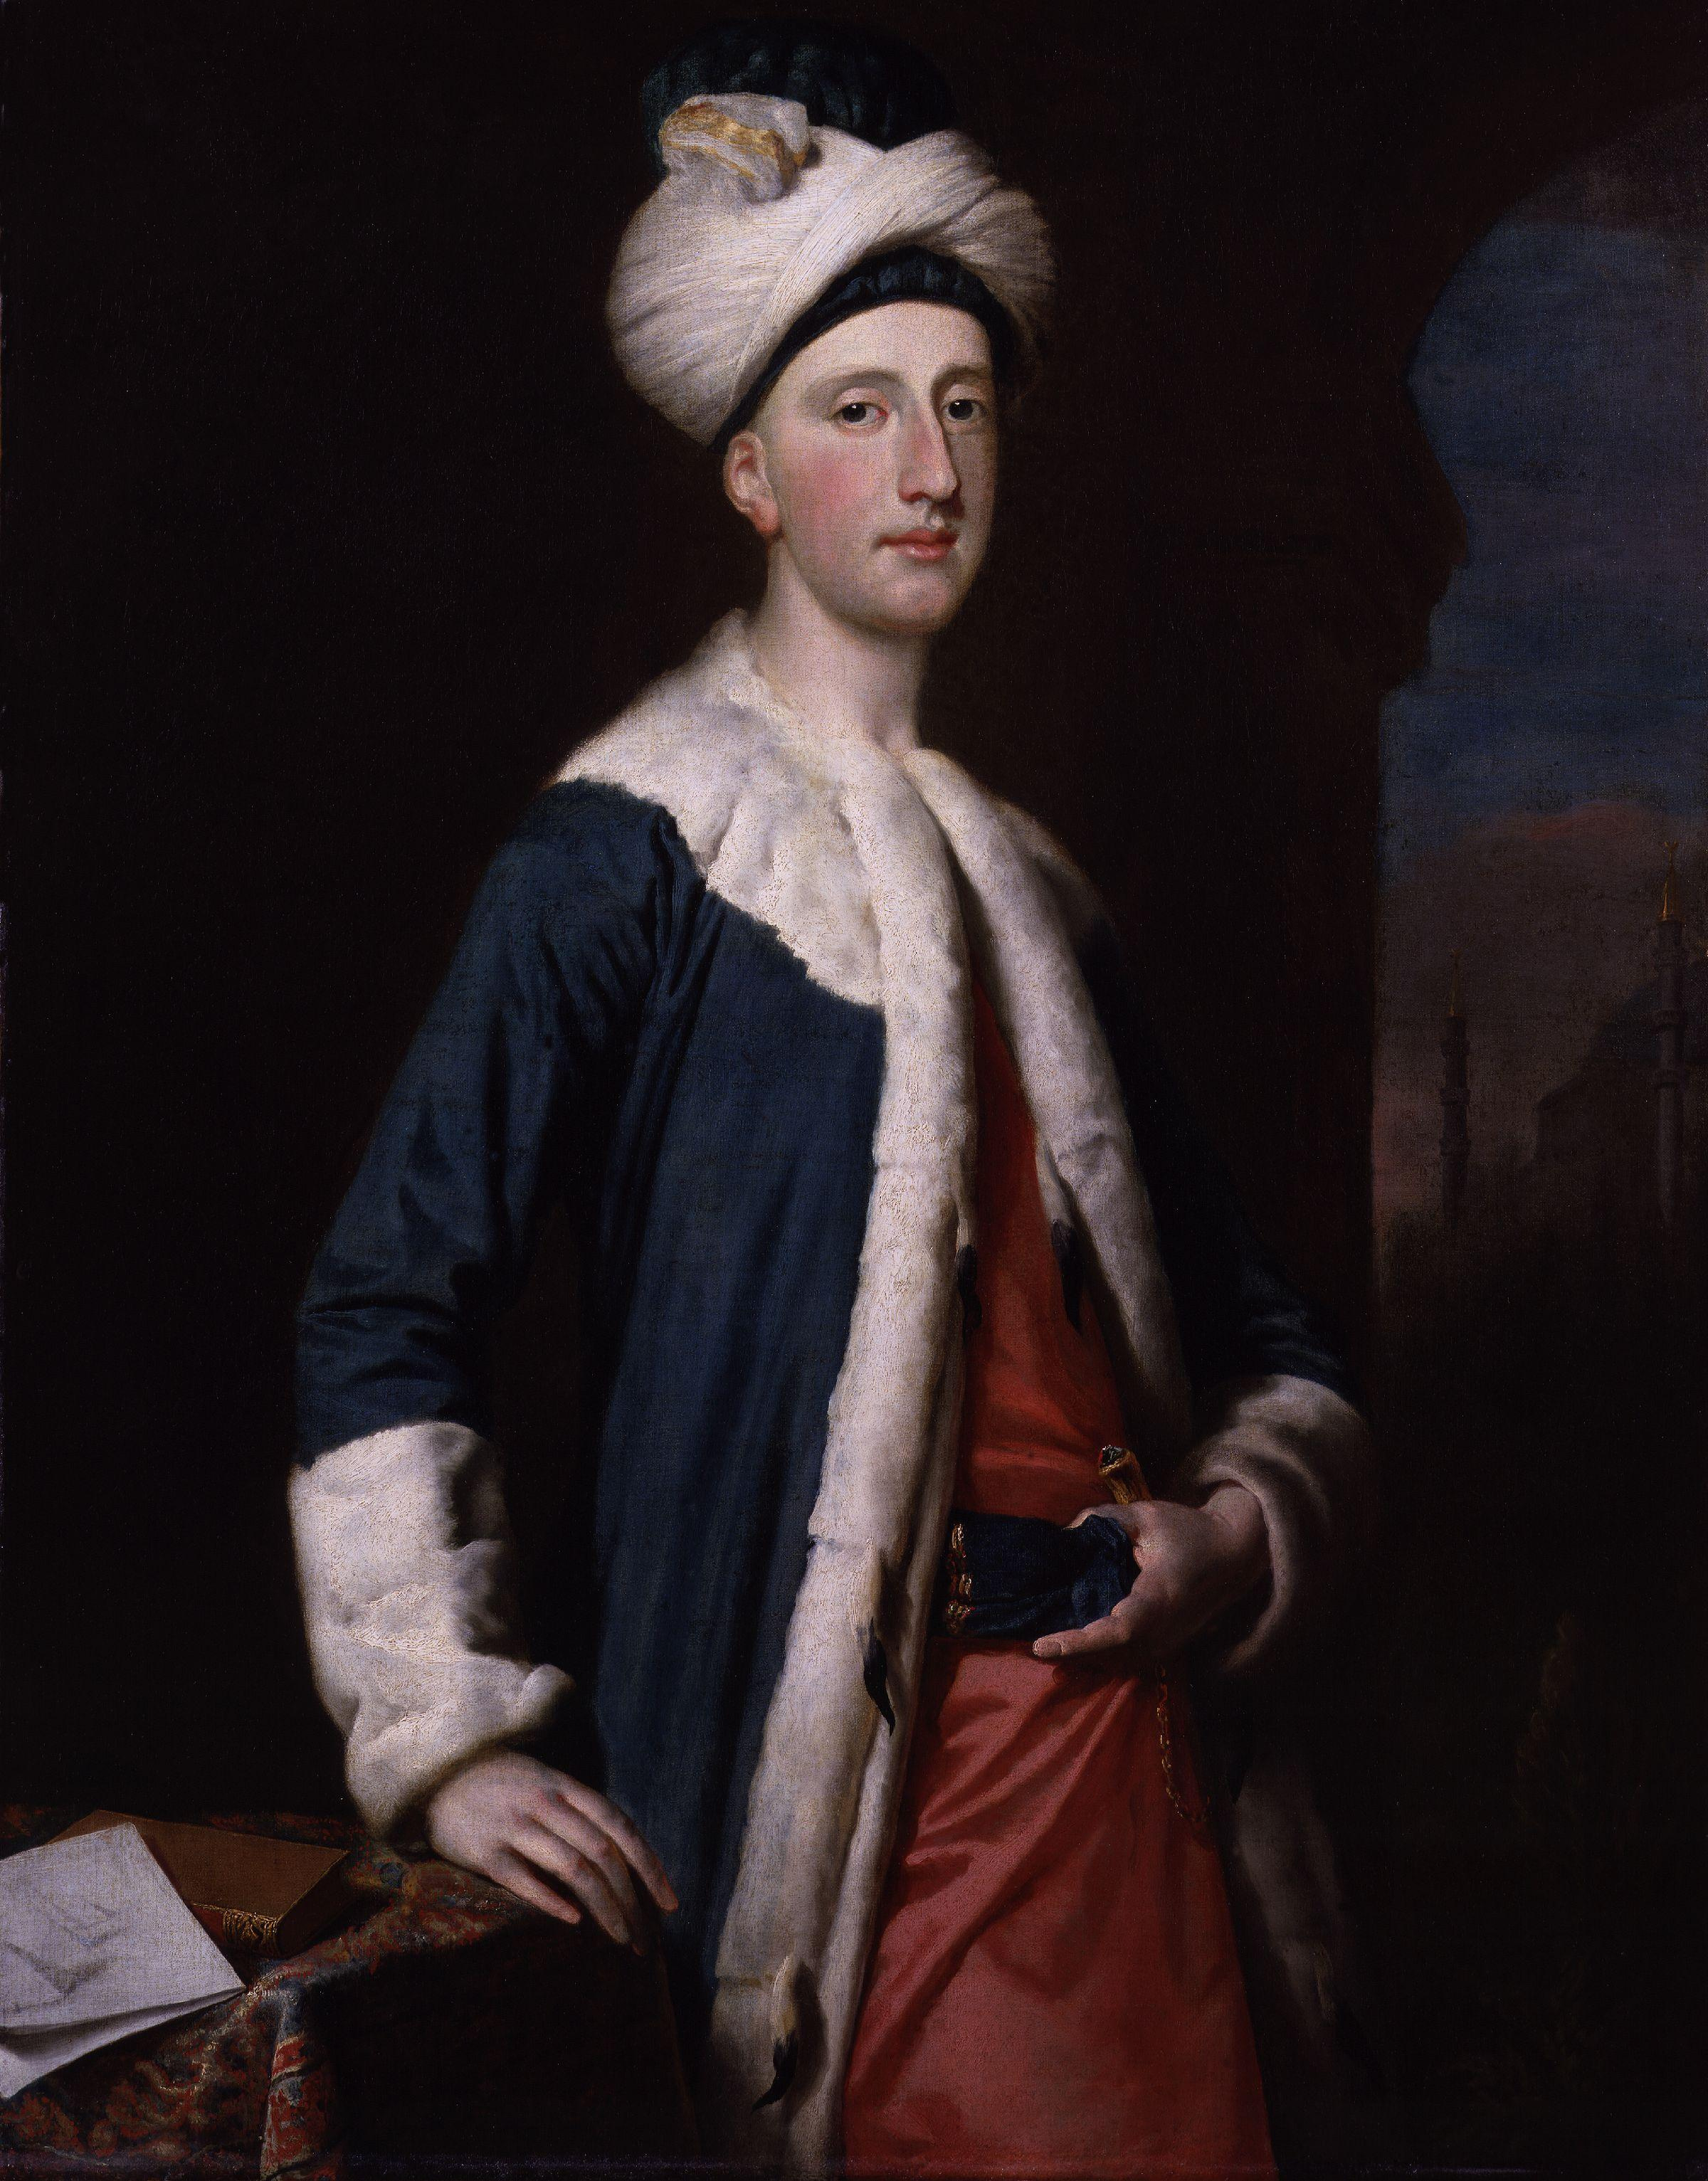 John Montagu, the 4th Earl of Sandwich.